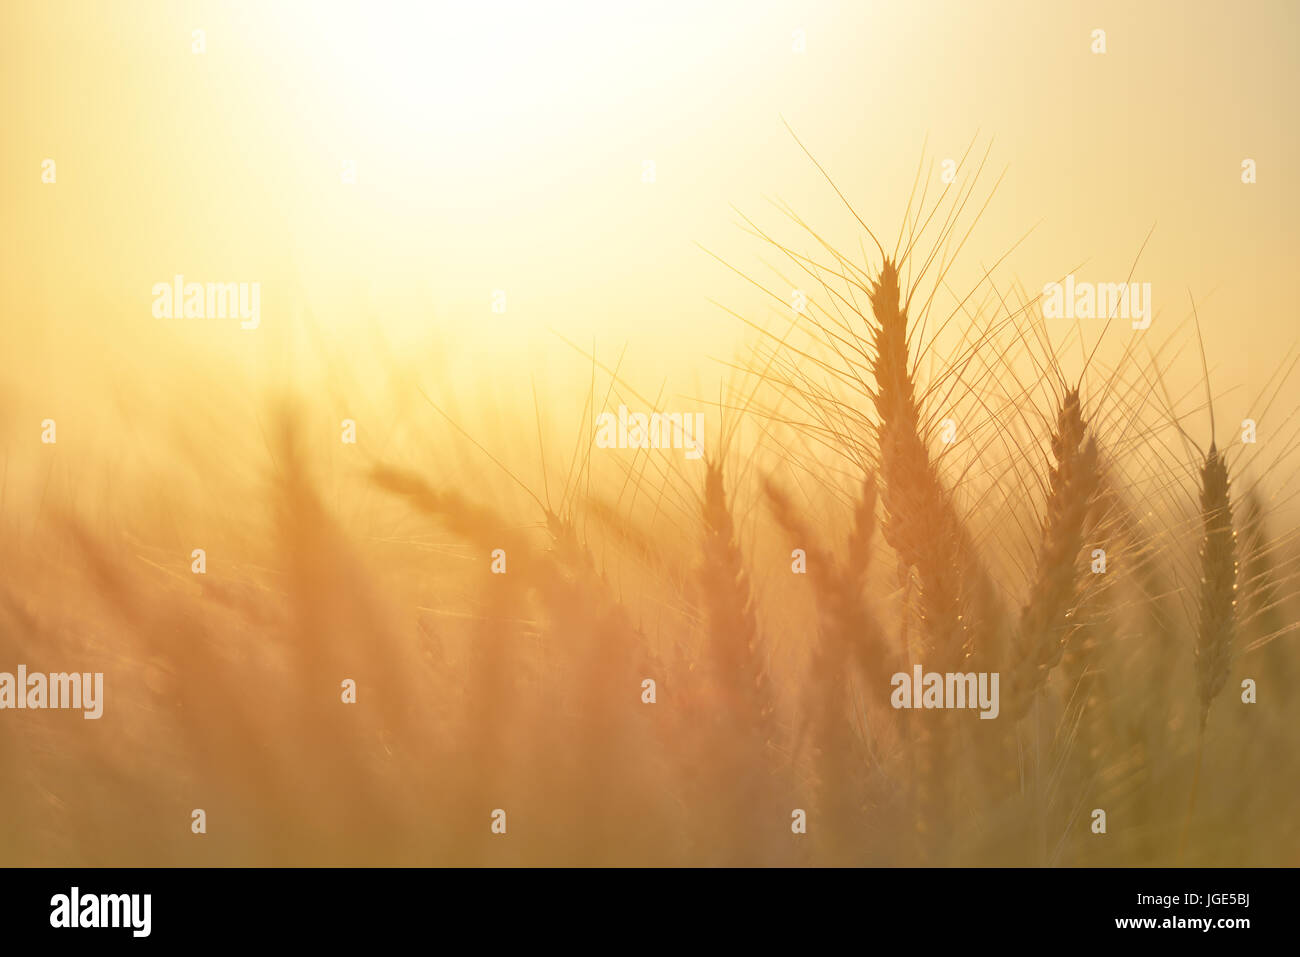 Wheat field. Ears of golden wheat close up. Beautiful Nature Sunset Landscape. Rural Scenery under Shining Sunlight. Background of ripening ears of me Stock Photo